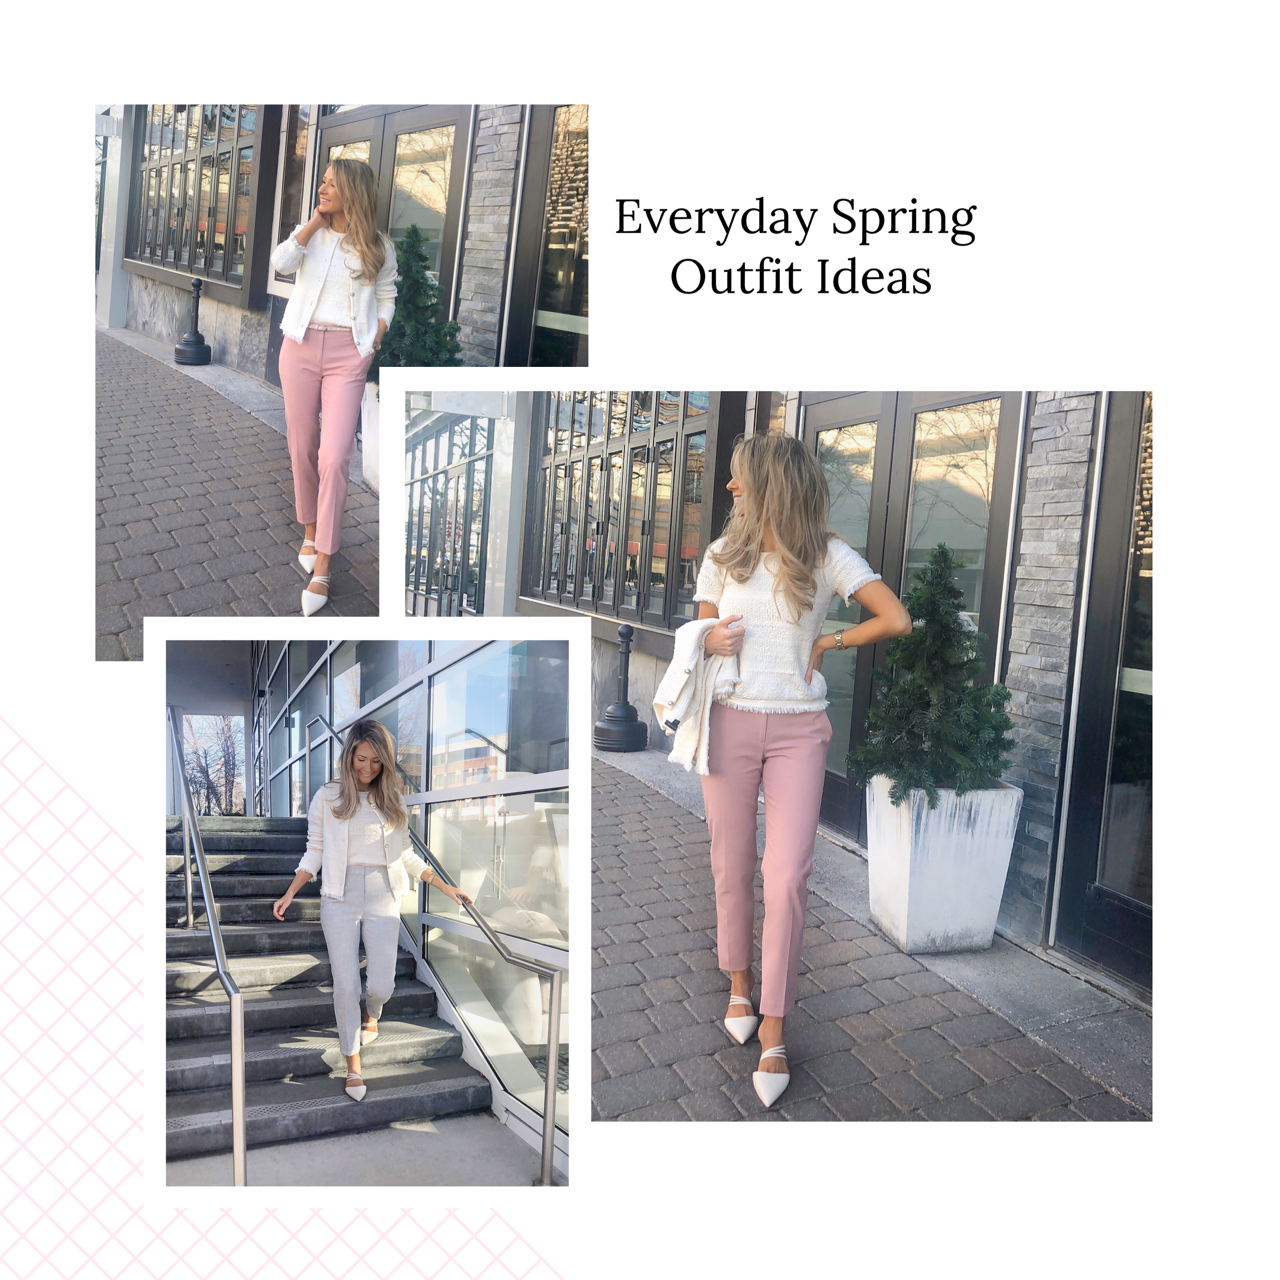 Everyday Spring Outfit Ideas